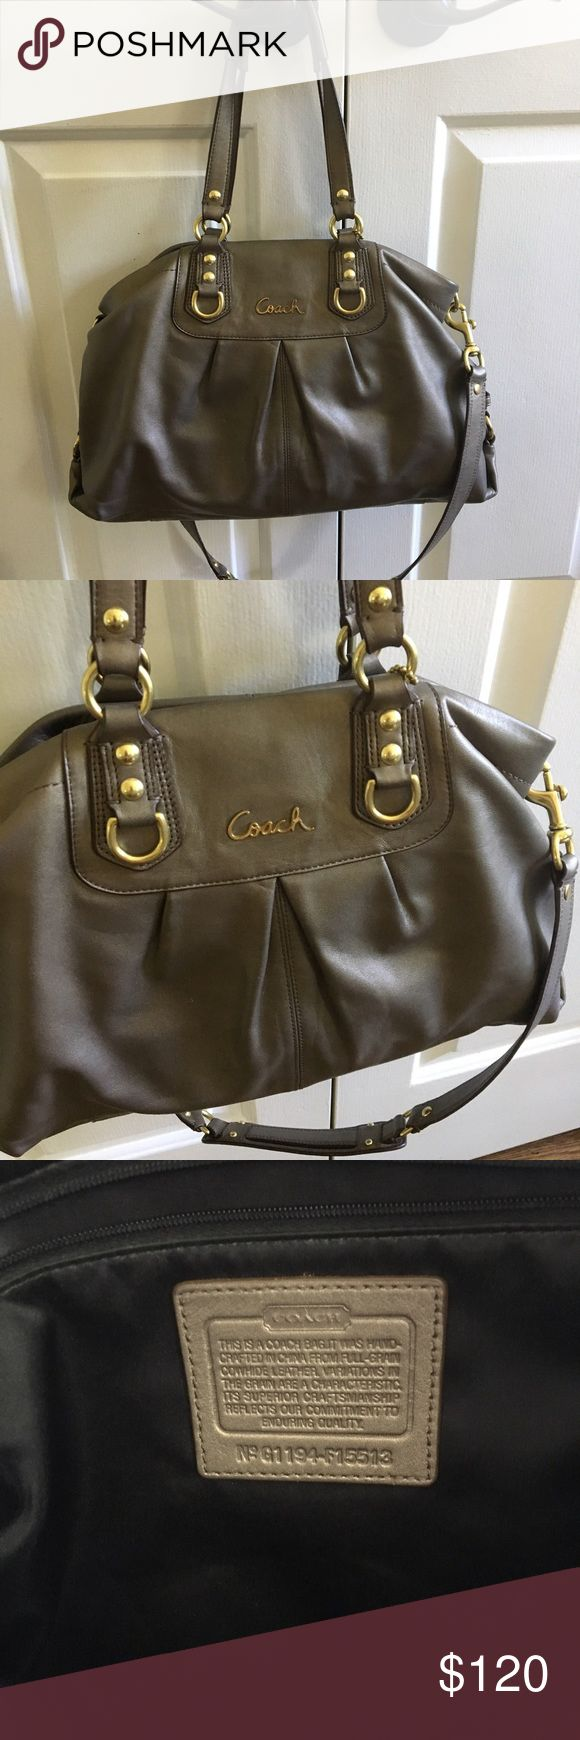 SALE!! Coach satchel bag Excellent used condition, authentic Coach satchel bag in a gold/gray color. Gently used for maybe one season.  Can be carried on shoulder or cross body, lots of storage inside! Getting rid of because I admittedly own too many purses, time to purge. Make me an offer! Coach Bags Satchels